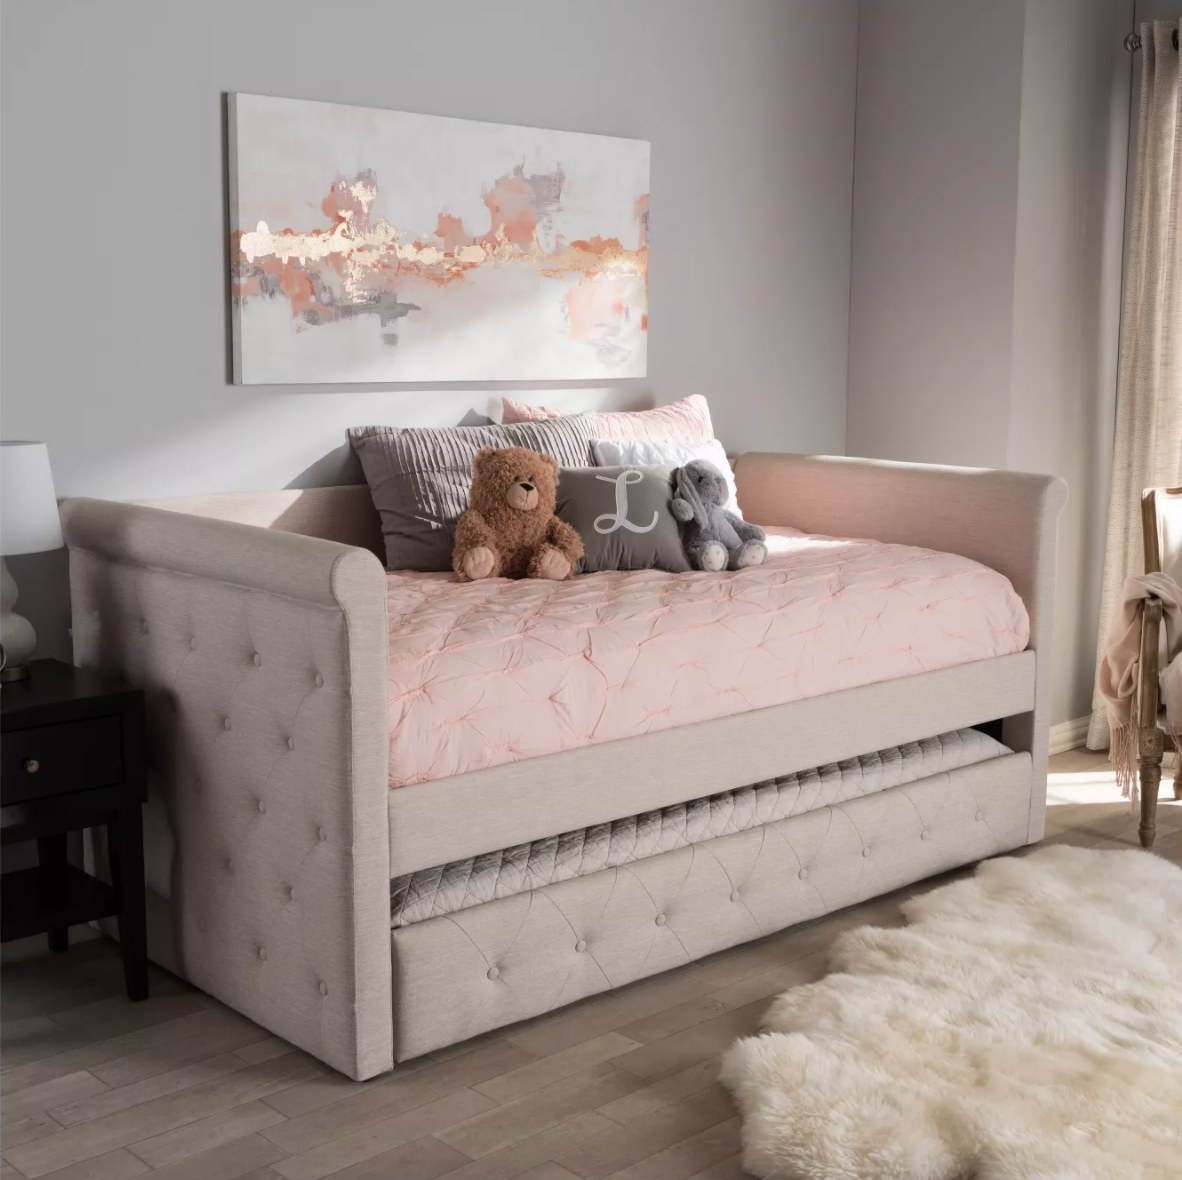 A beige tufted daybed with trundle